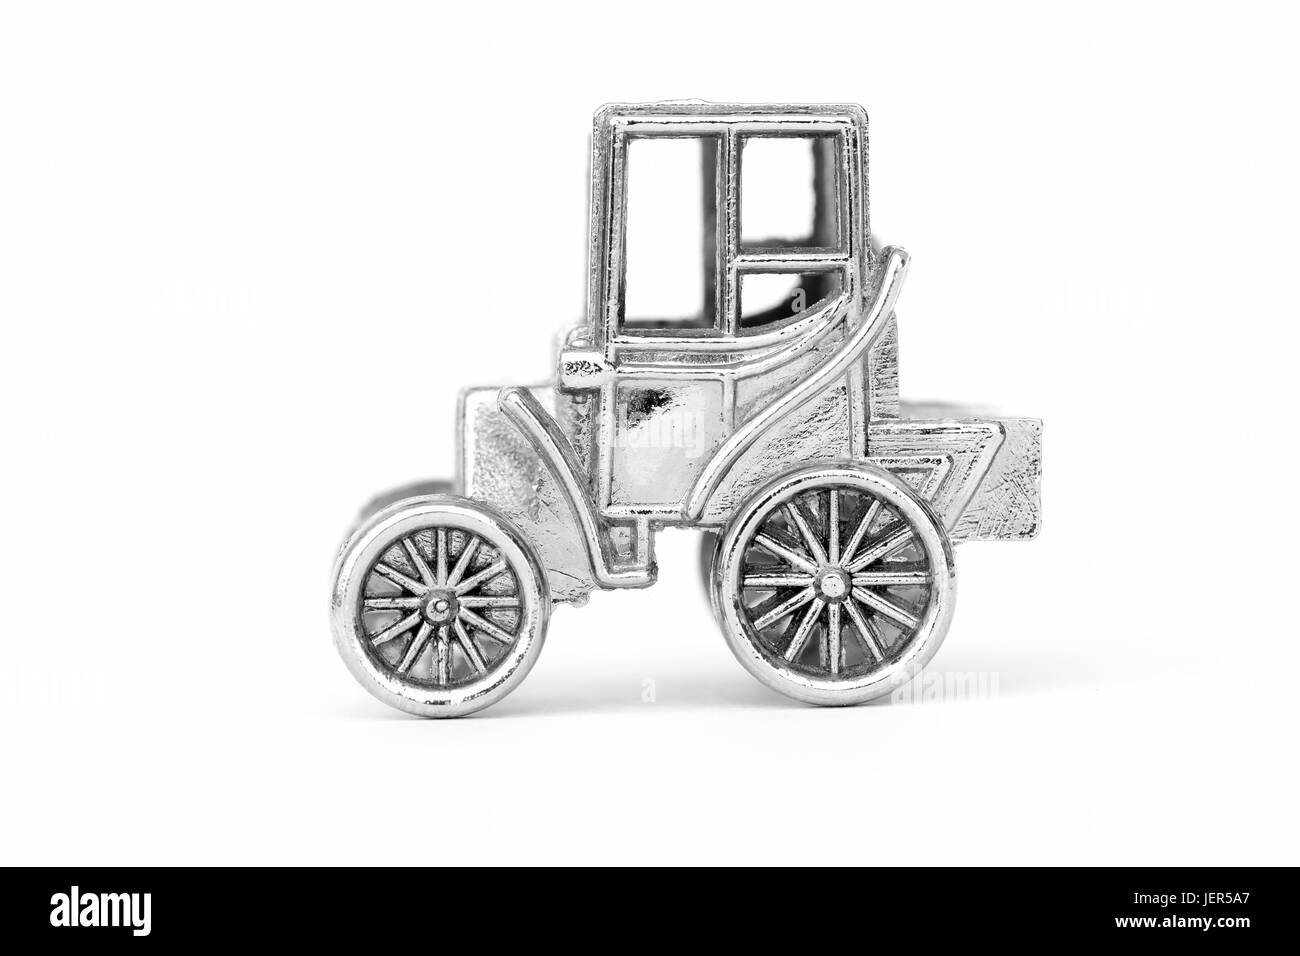 Metal chrome model vintage car on a white background - Stock Image